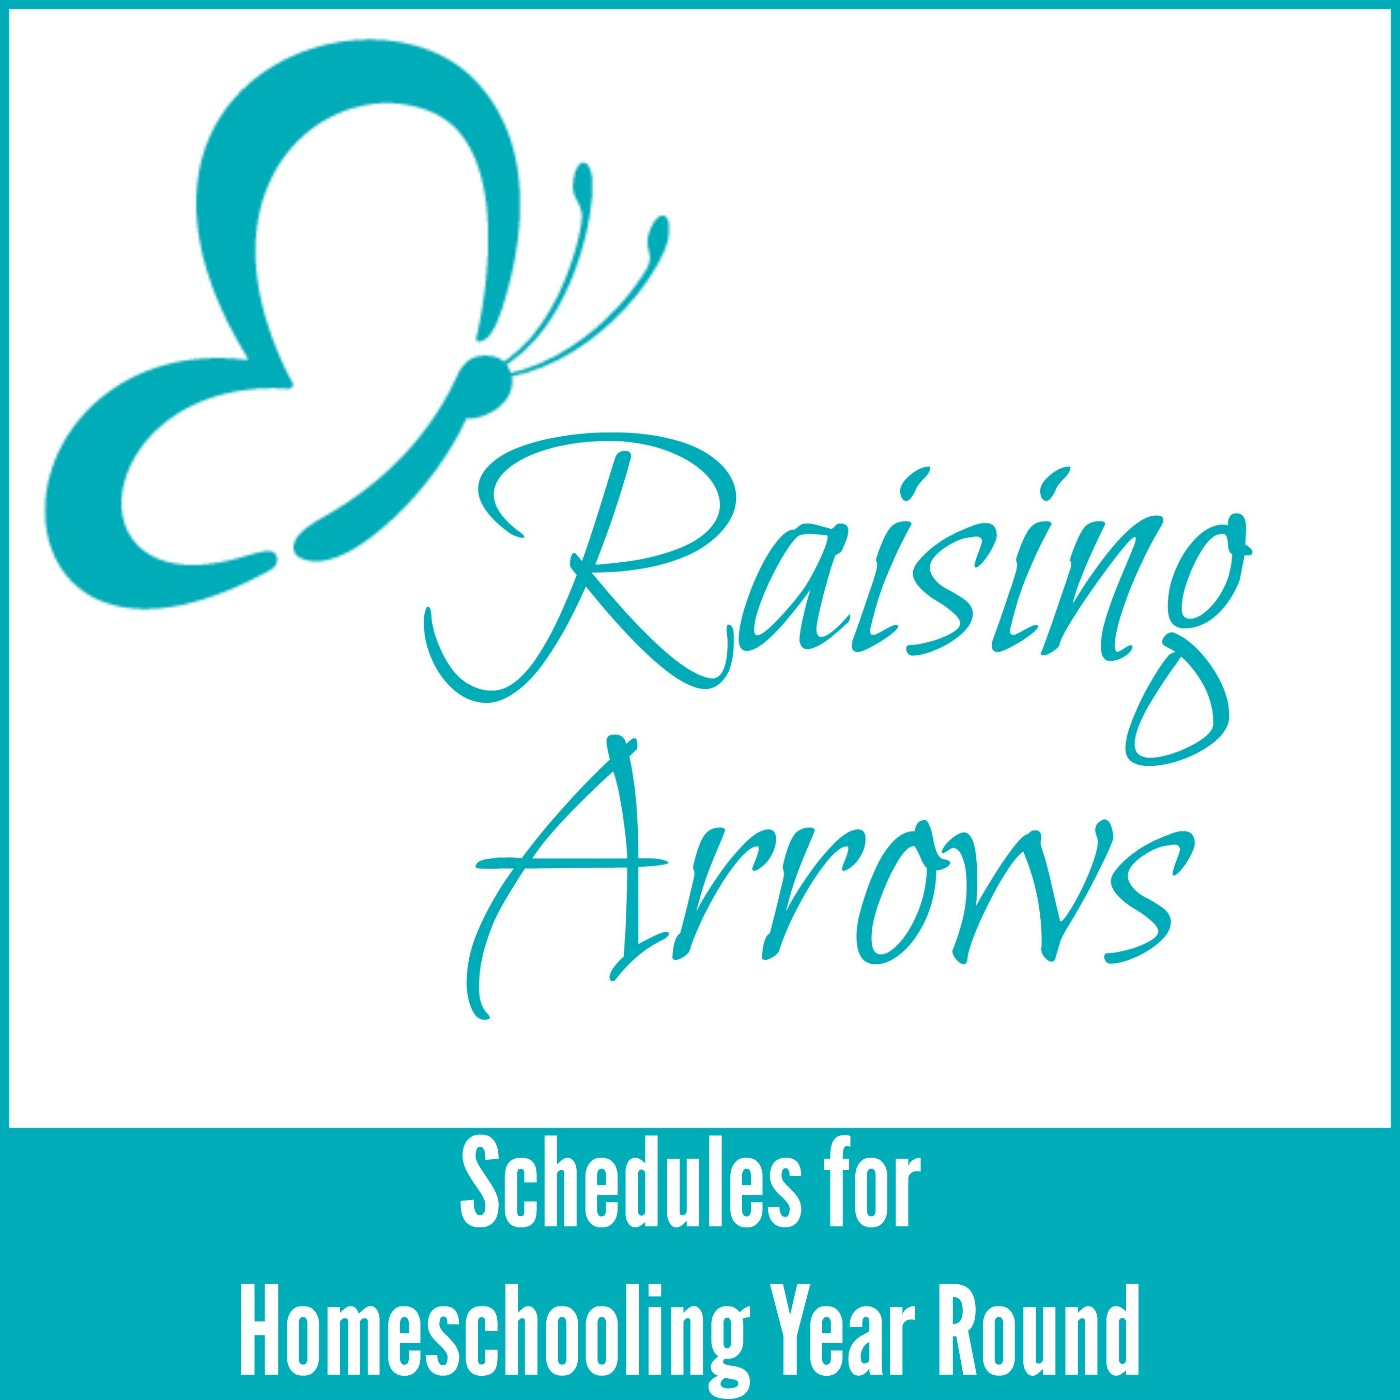 Schedules for Homeschooling Year Round – 010 Podcast